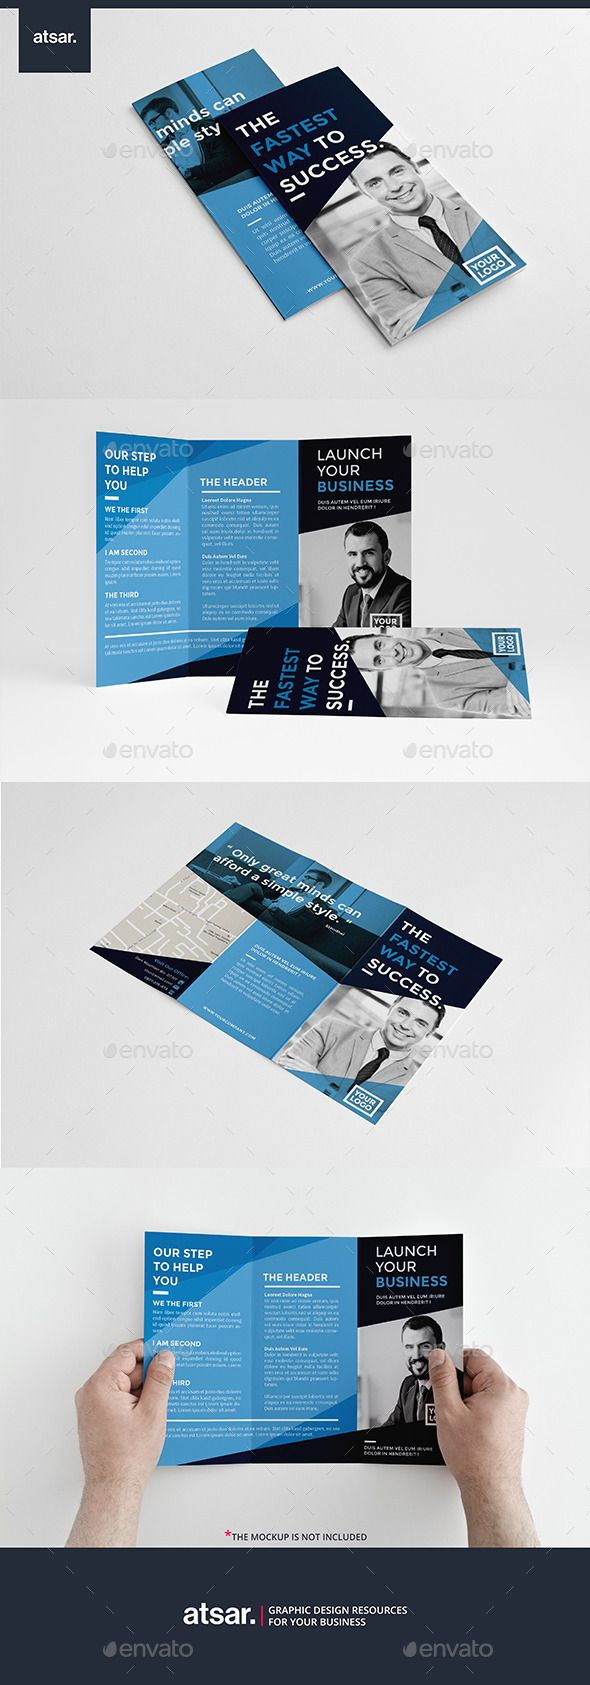 Famous 1 Page Resume Format Free Download Tall 100 Free Resume Builder And Download Clean 100 Free Resume Builder Online 1099 Contract Template Youthful 15 Year Old Resume Brown2 Circle Template 420 Best Images About Leaflet Design(World) On Pinterest ..